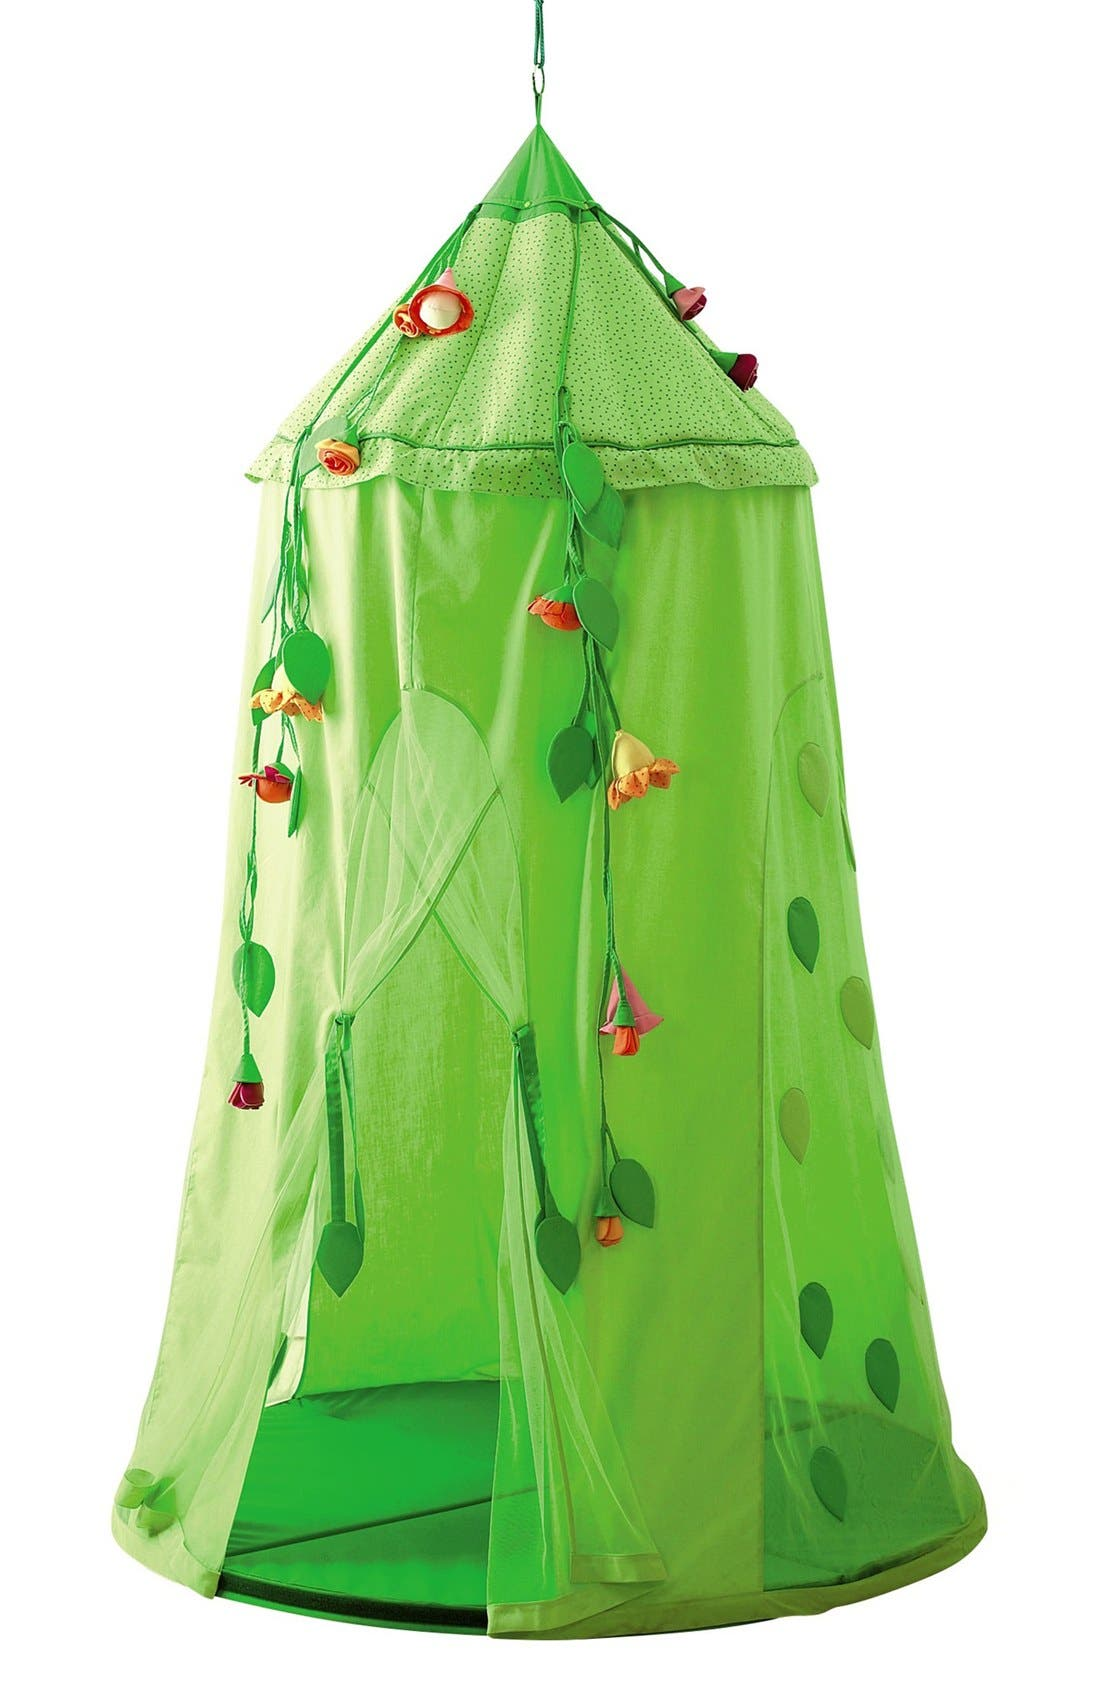 Main Image - HABA 'Blossom Sky' Hanging Play Tent